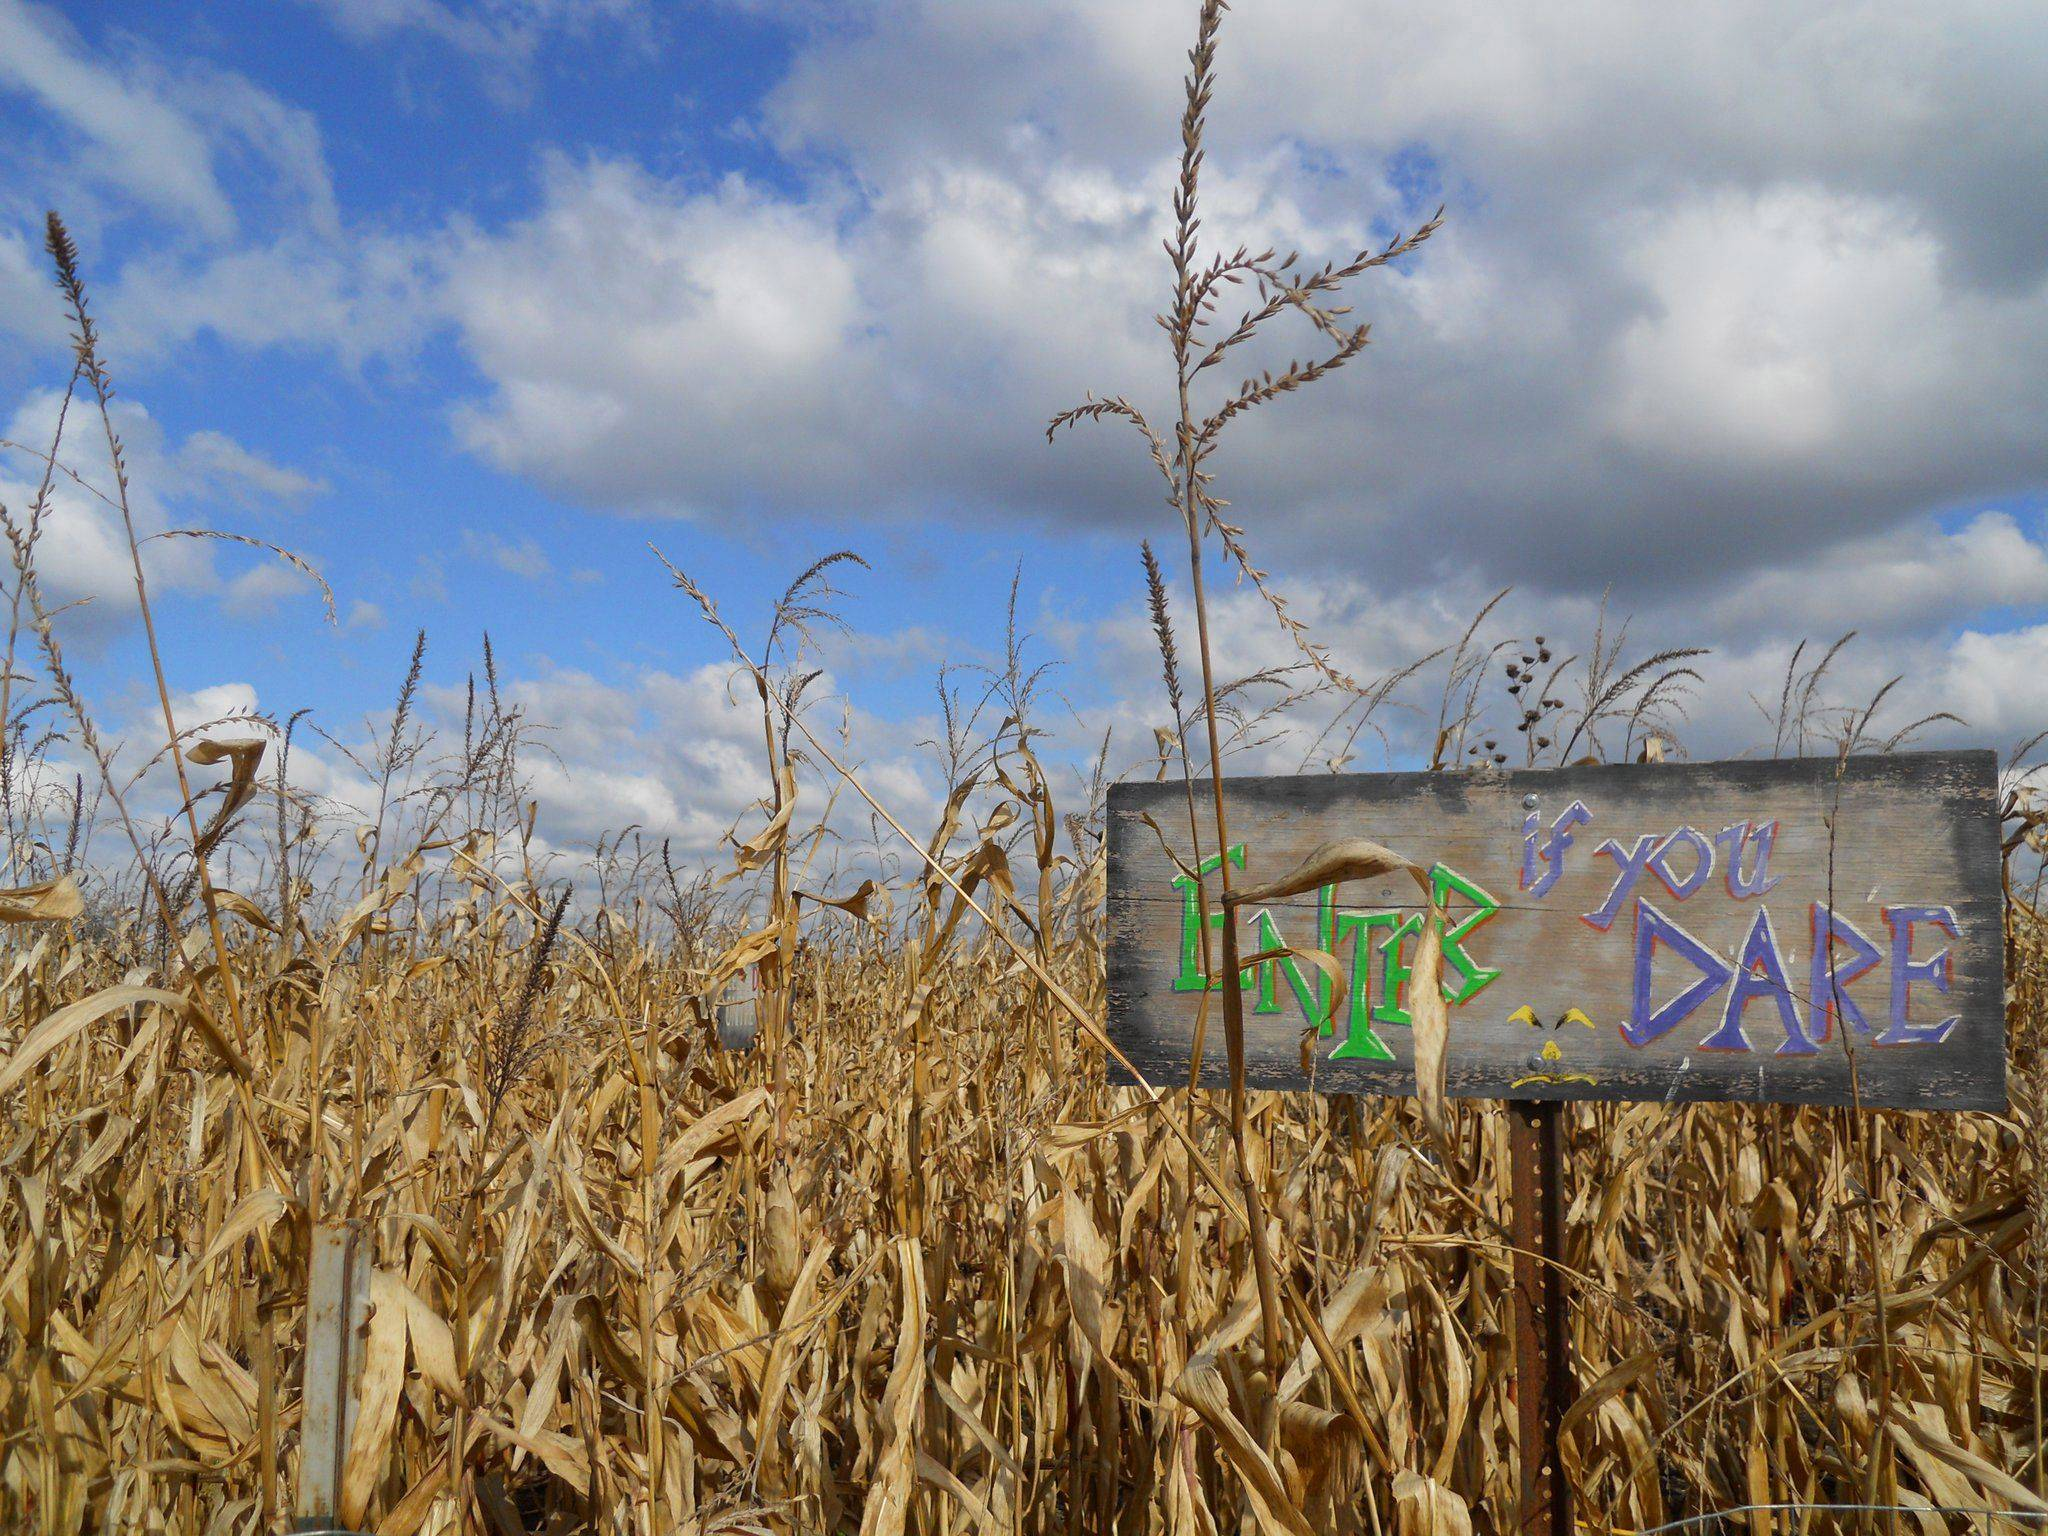 A sign tries to confuse maze dwellers in the corn maze at Didier Farms in Prairie View.